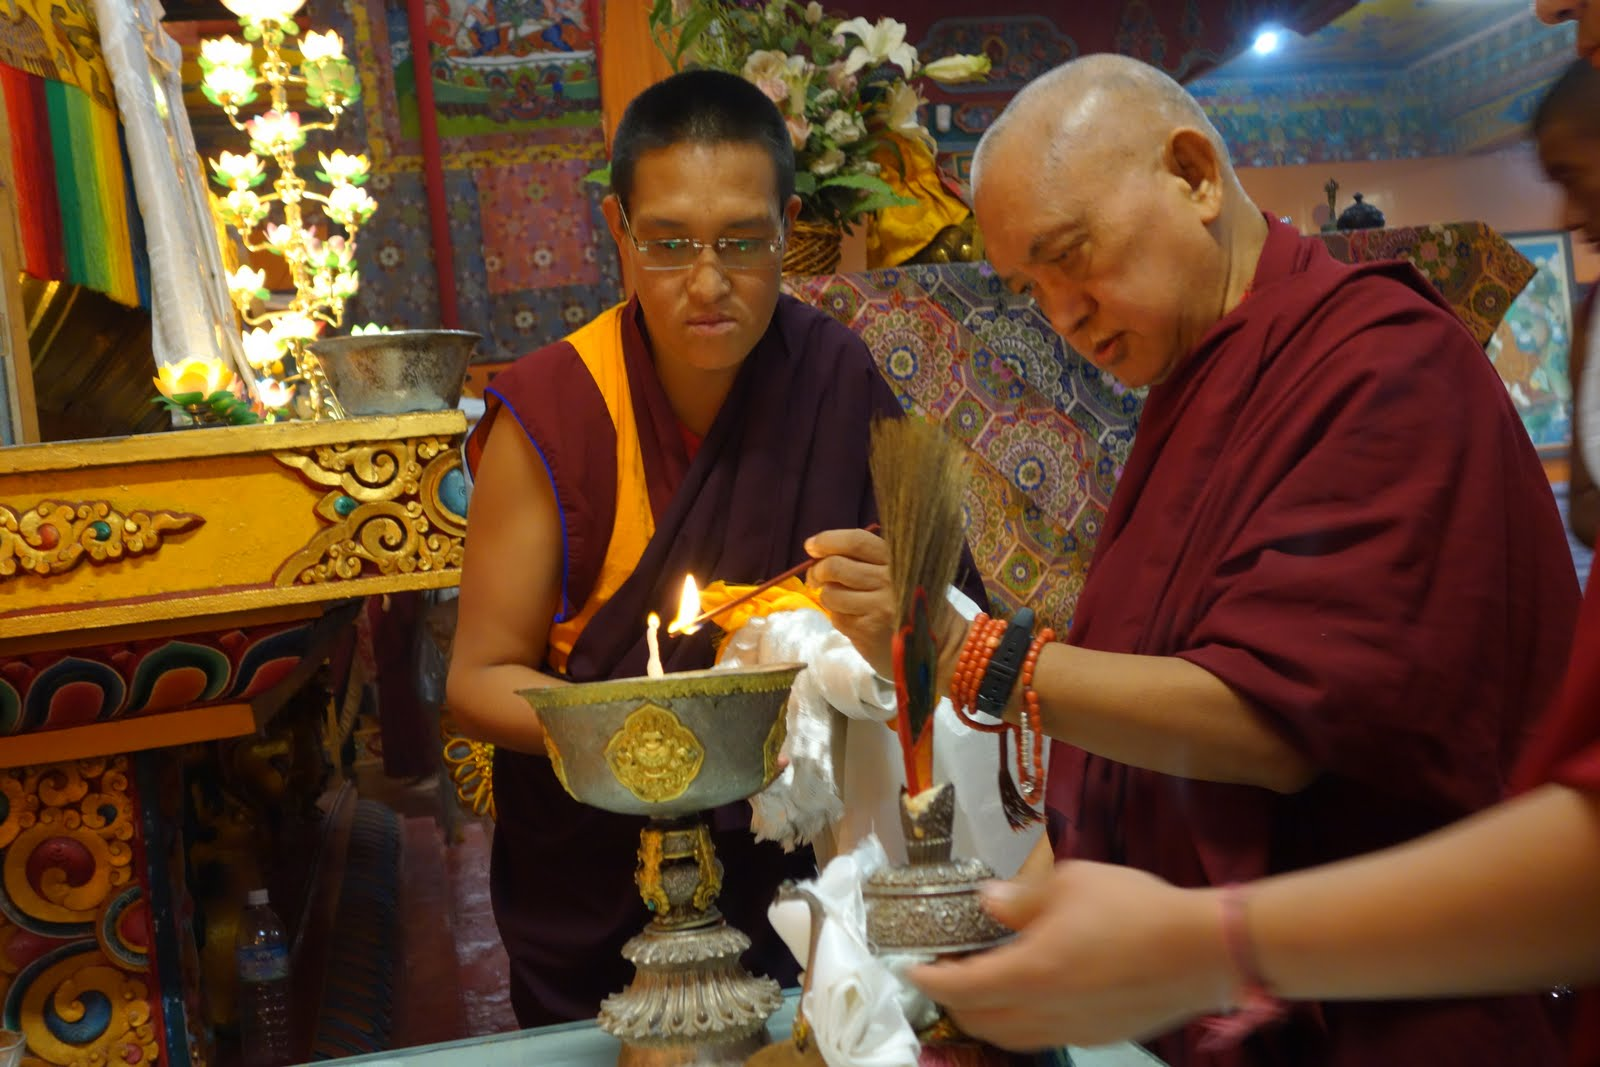 Rinpoche lighting a large butter lamp in Kopan gompa after arriving from the airport to Kopan. Rinpoche did 3 long prostrations and then katha offering the main statues including the Lama Yeshe statue. Photo by Ven. Roger Kunsang